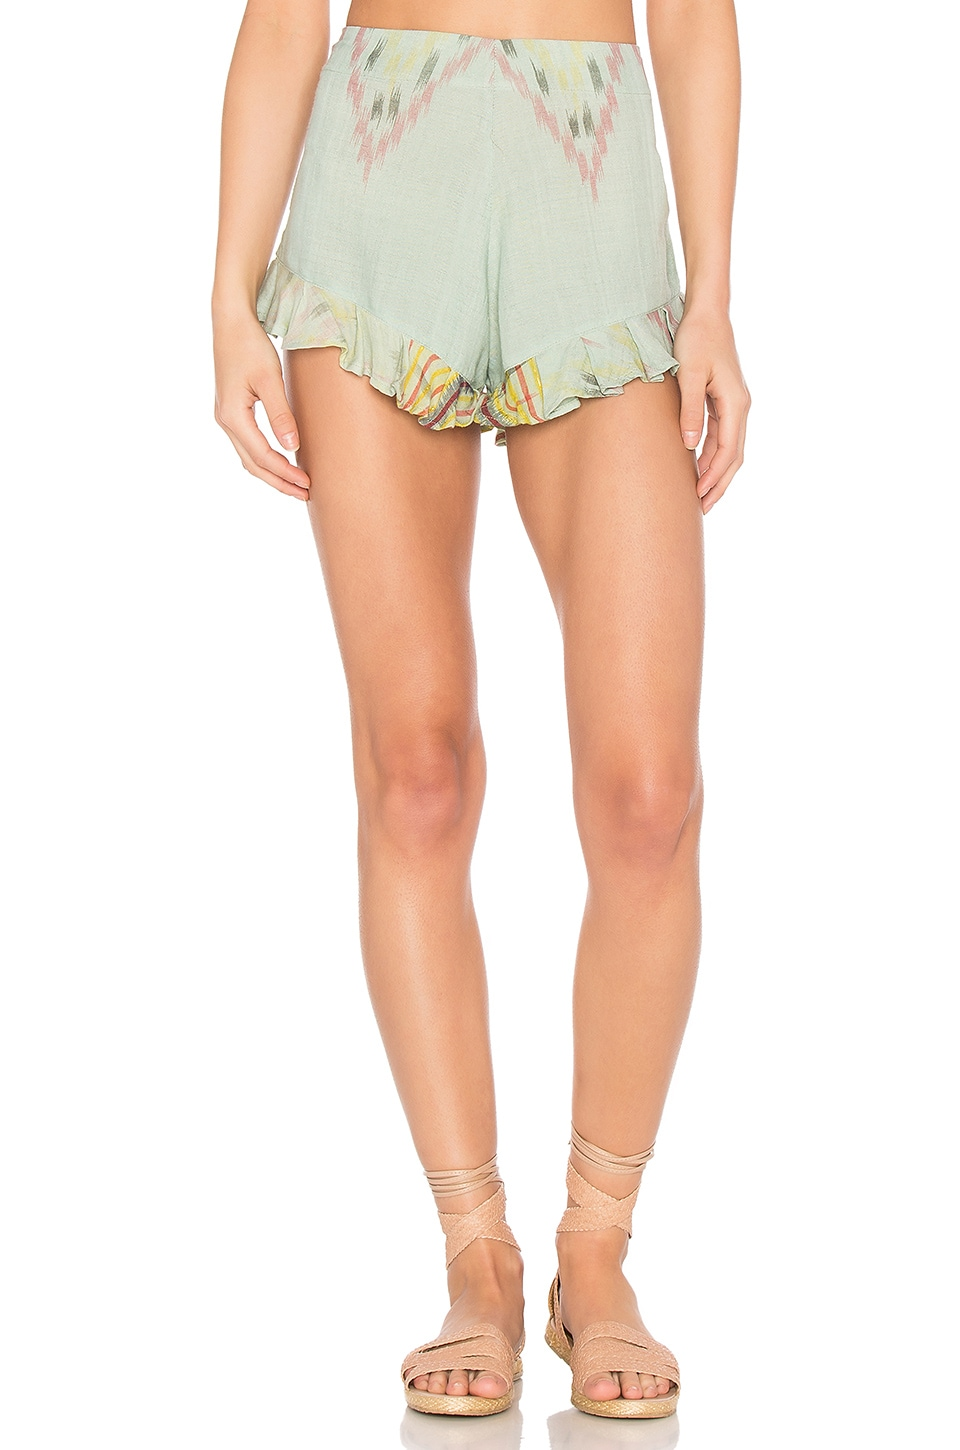 Marcelle Shorts